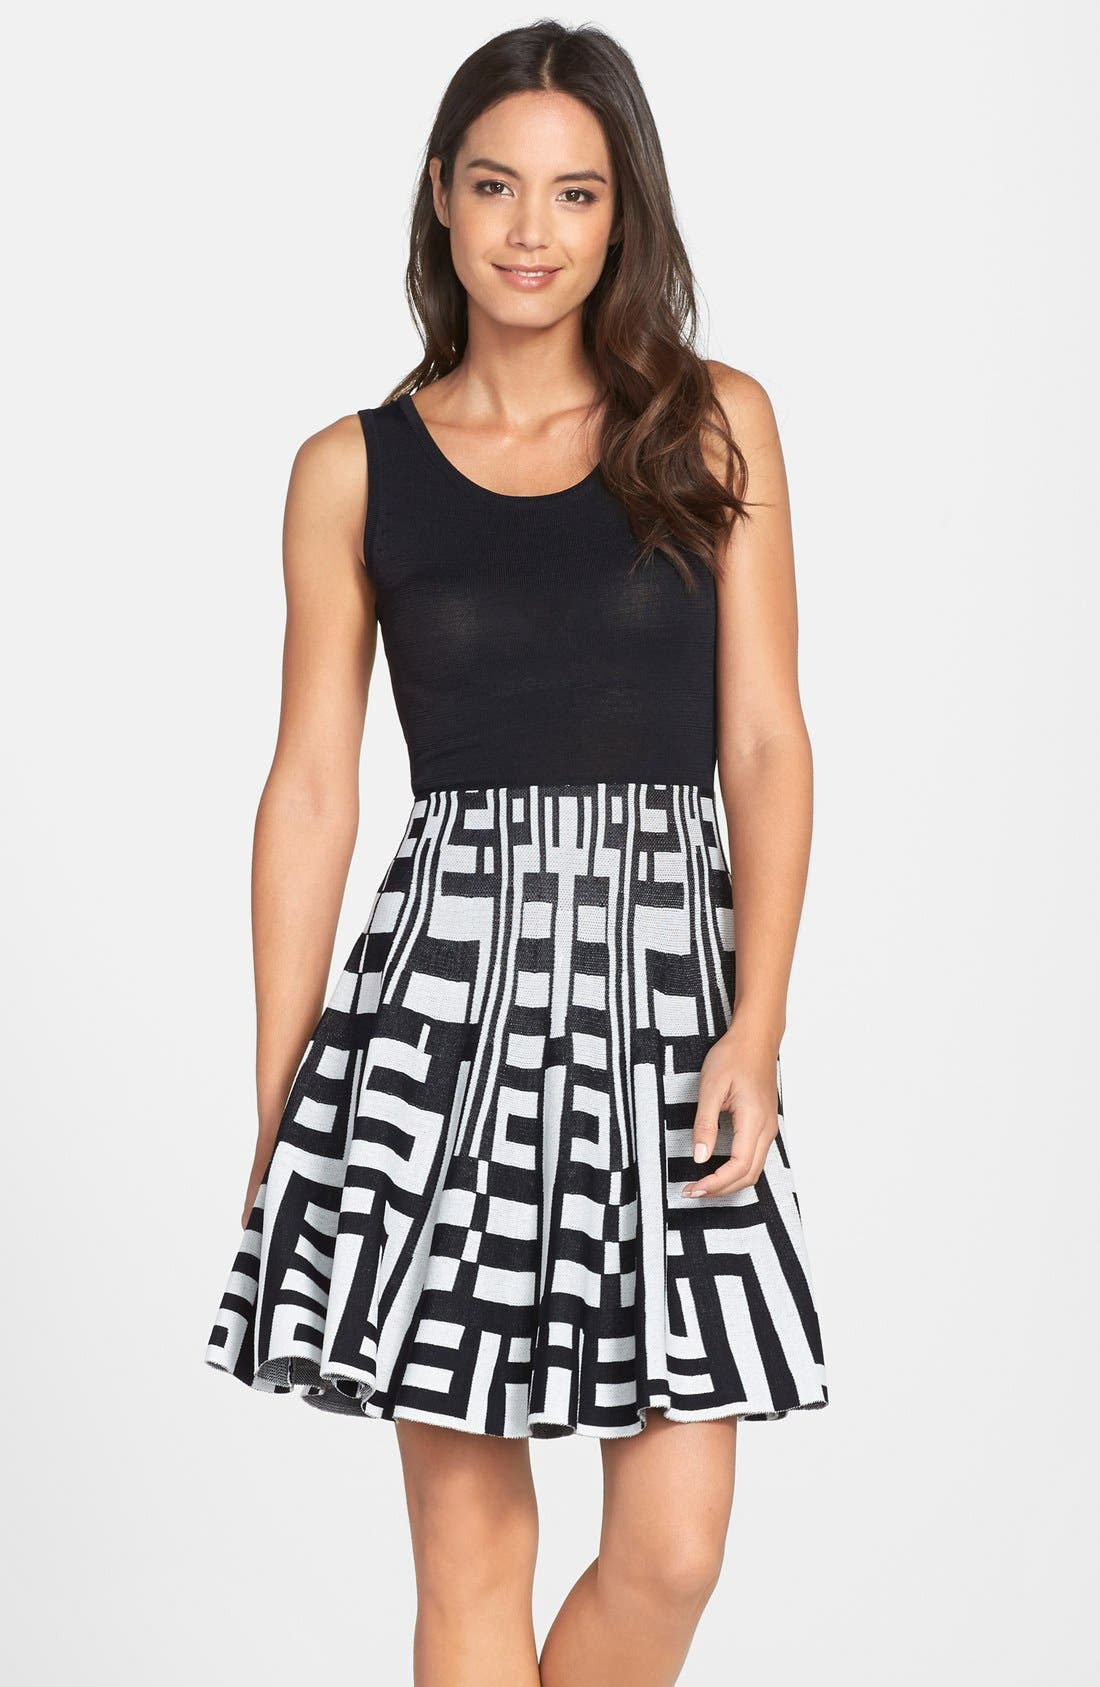 Alternate Image 1 Selected - Plenty by Tracy Reese 'Amber' Print Skirt Fit & Flare Sweater Dress (Regular & Petite)